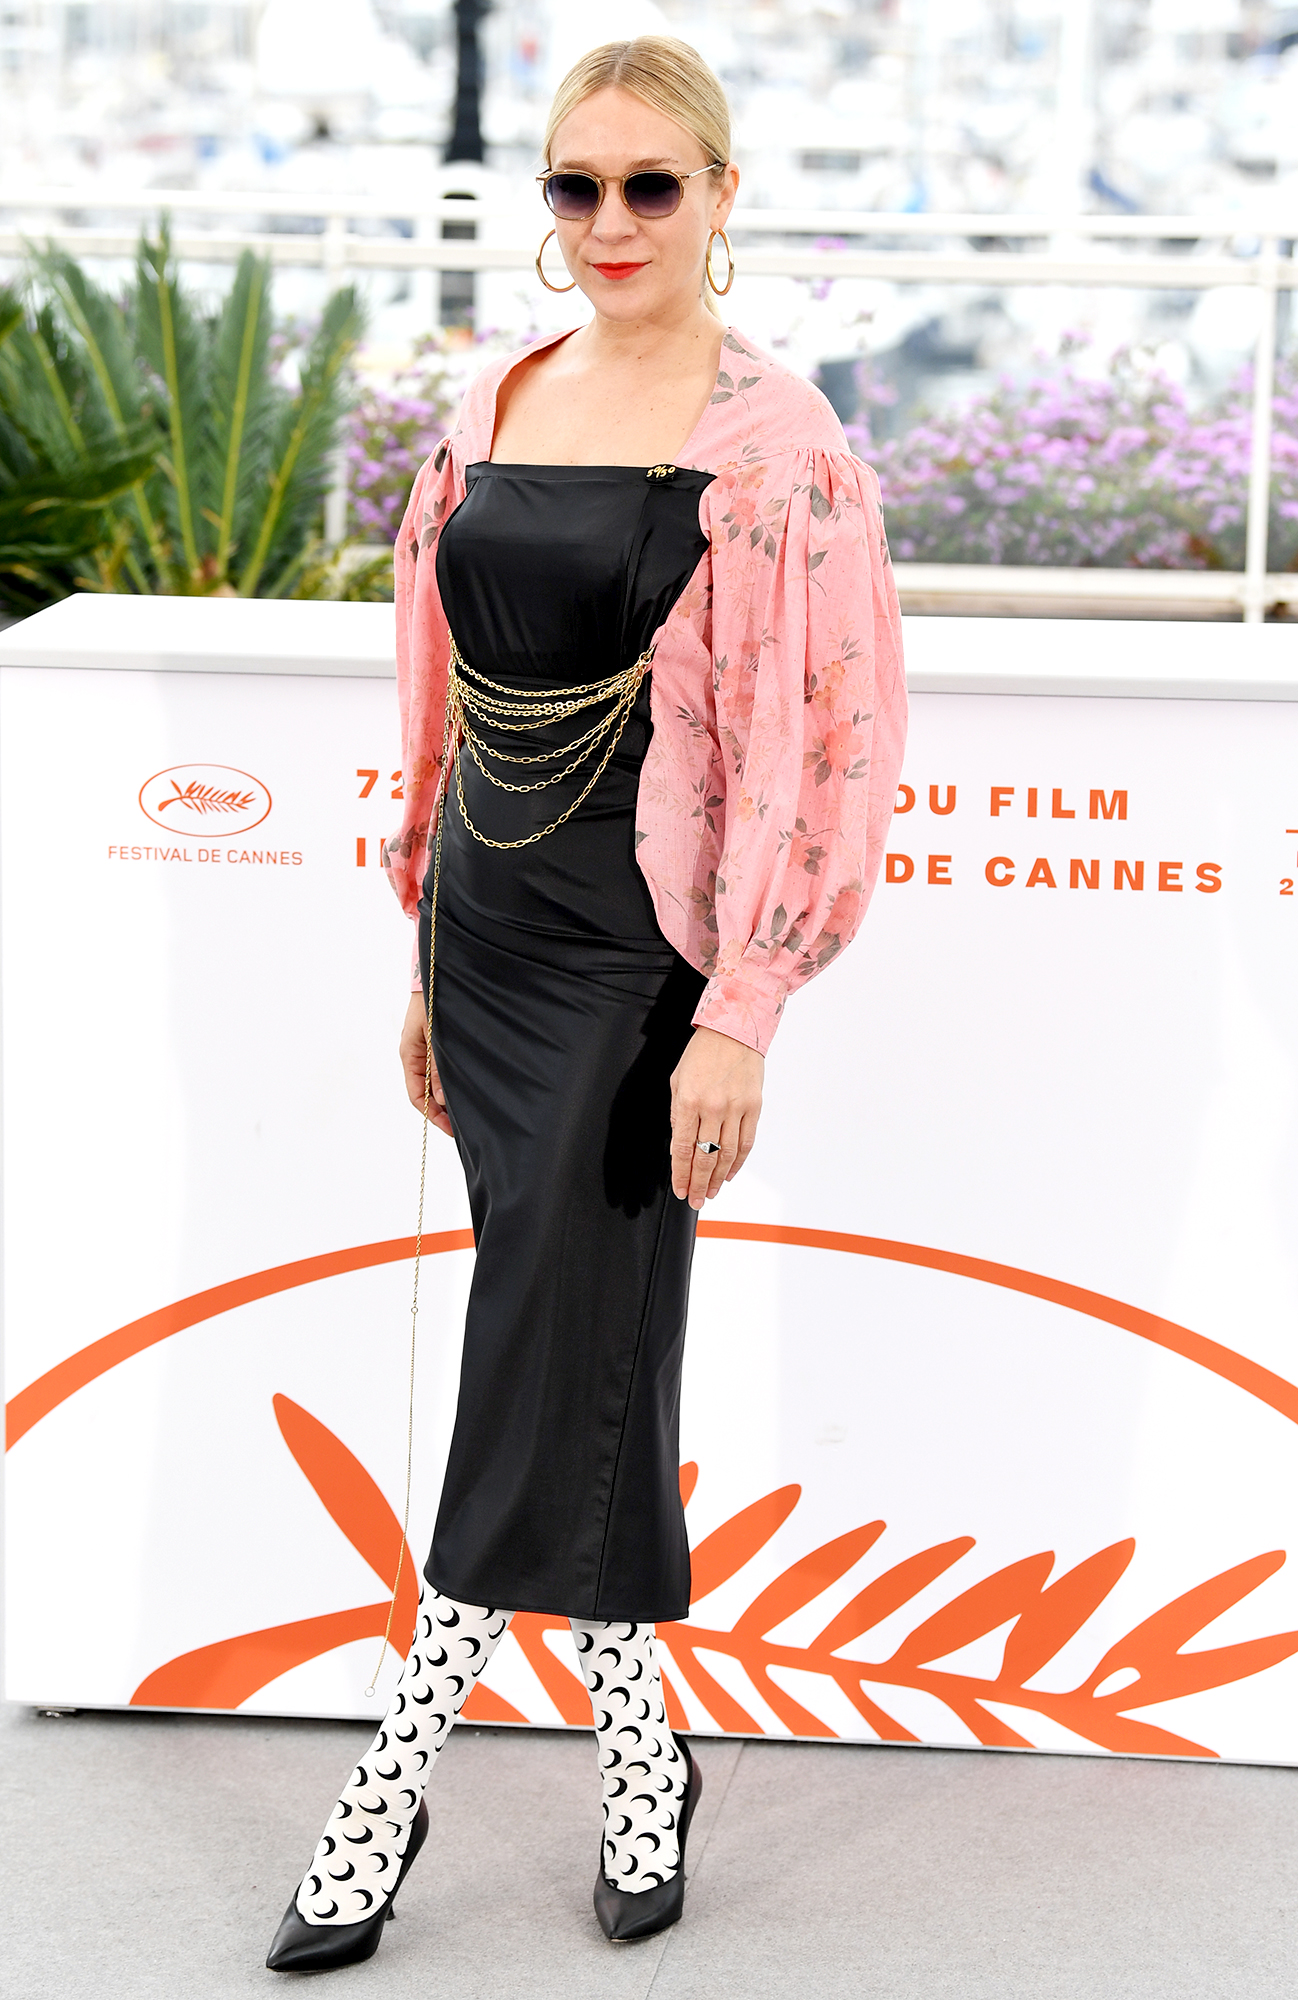 Chloe-Sevigny - The actress played with patterns in her black, white and pink look at the Les Realisateurs Des Courts Metrages En Competition photo-call on Friday, May 24.